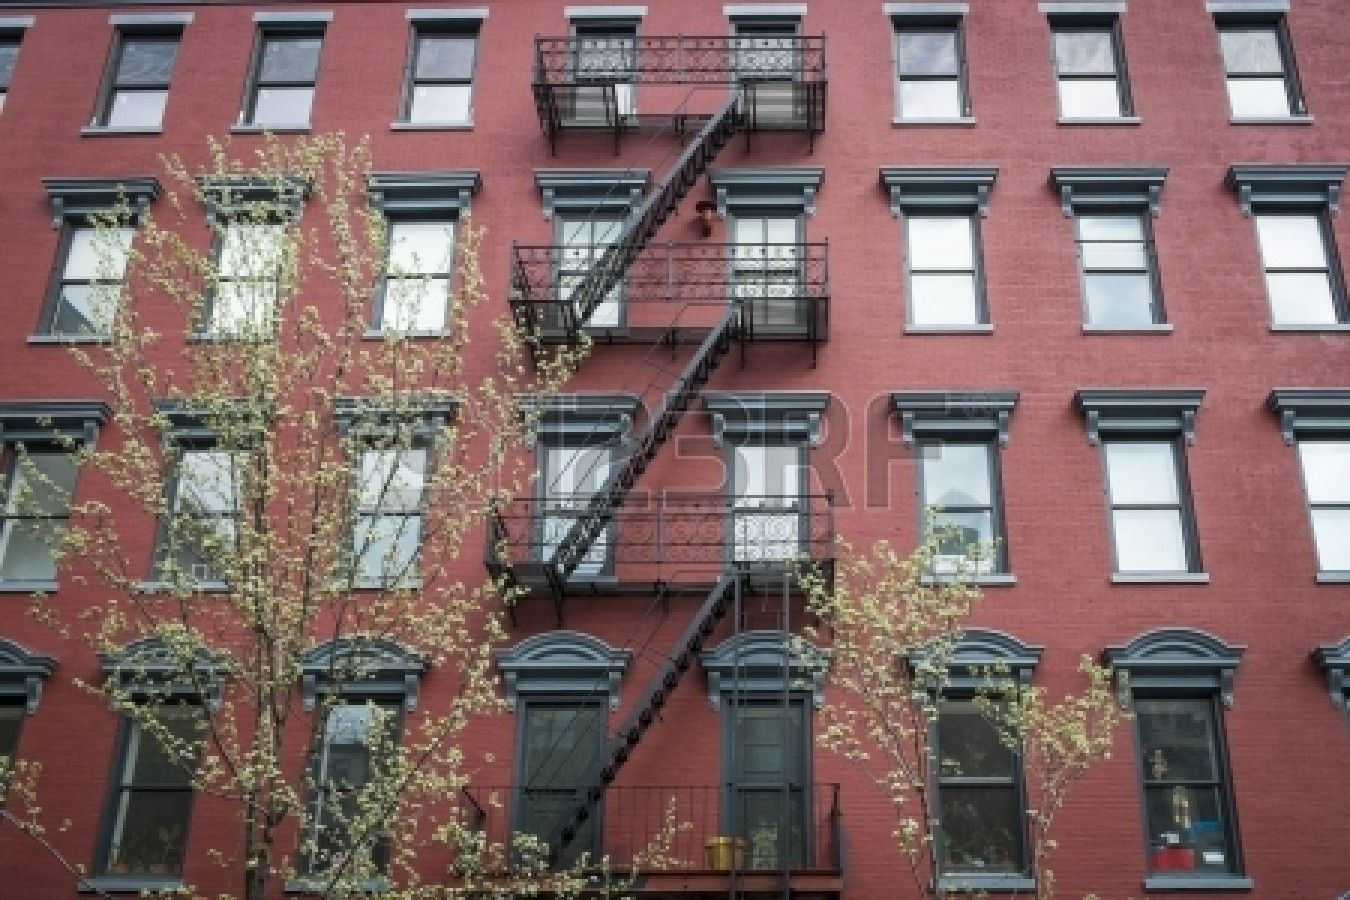 Old Red Brick Apartment Building In New York City Stock Photo 23434814